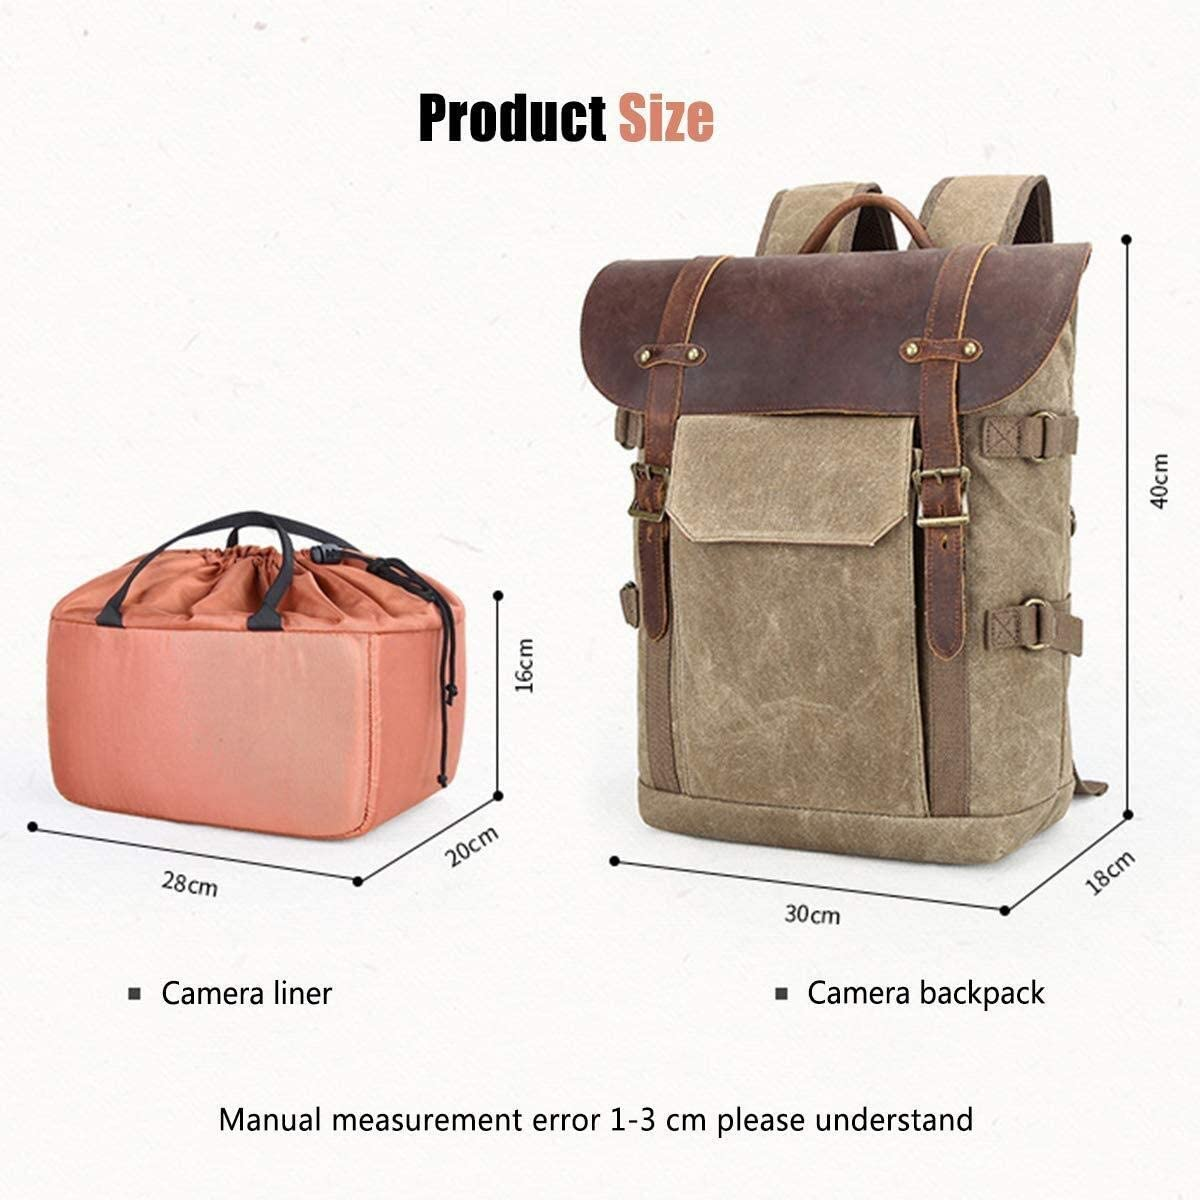 Mihaojianbing Digital SLR Camera Backpack Photo Leisure Travel Bag Batik Canvas Camera Backpack Laptop Tripod Lens //30 X 18 X 40 cm Military Green Pratical